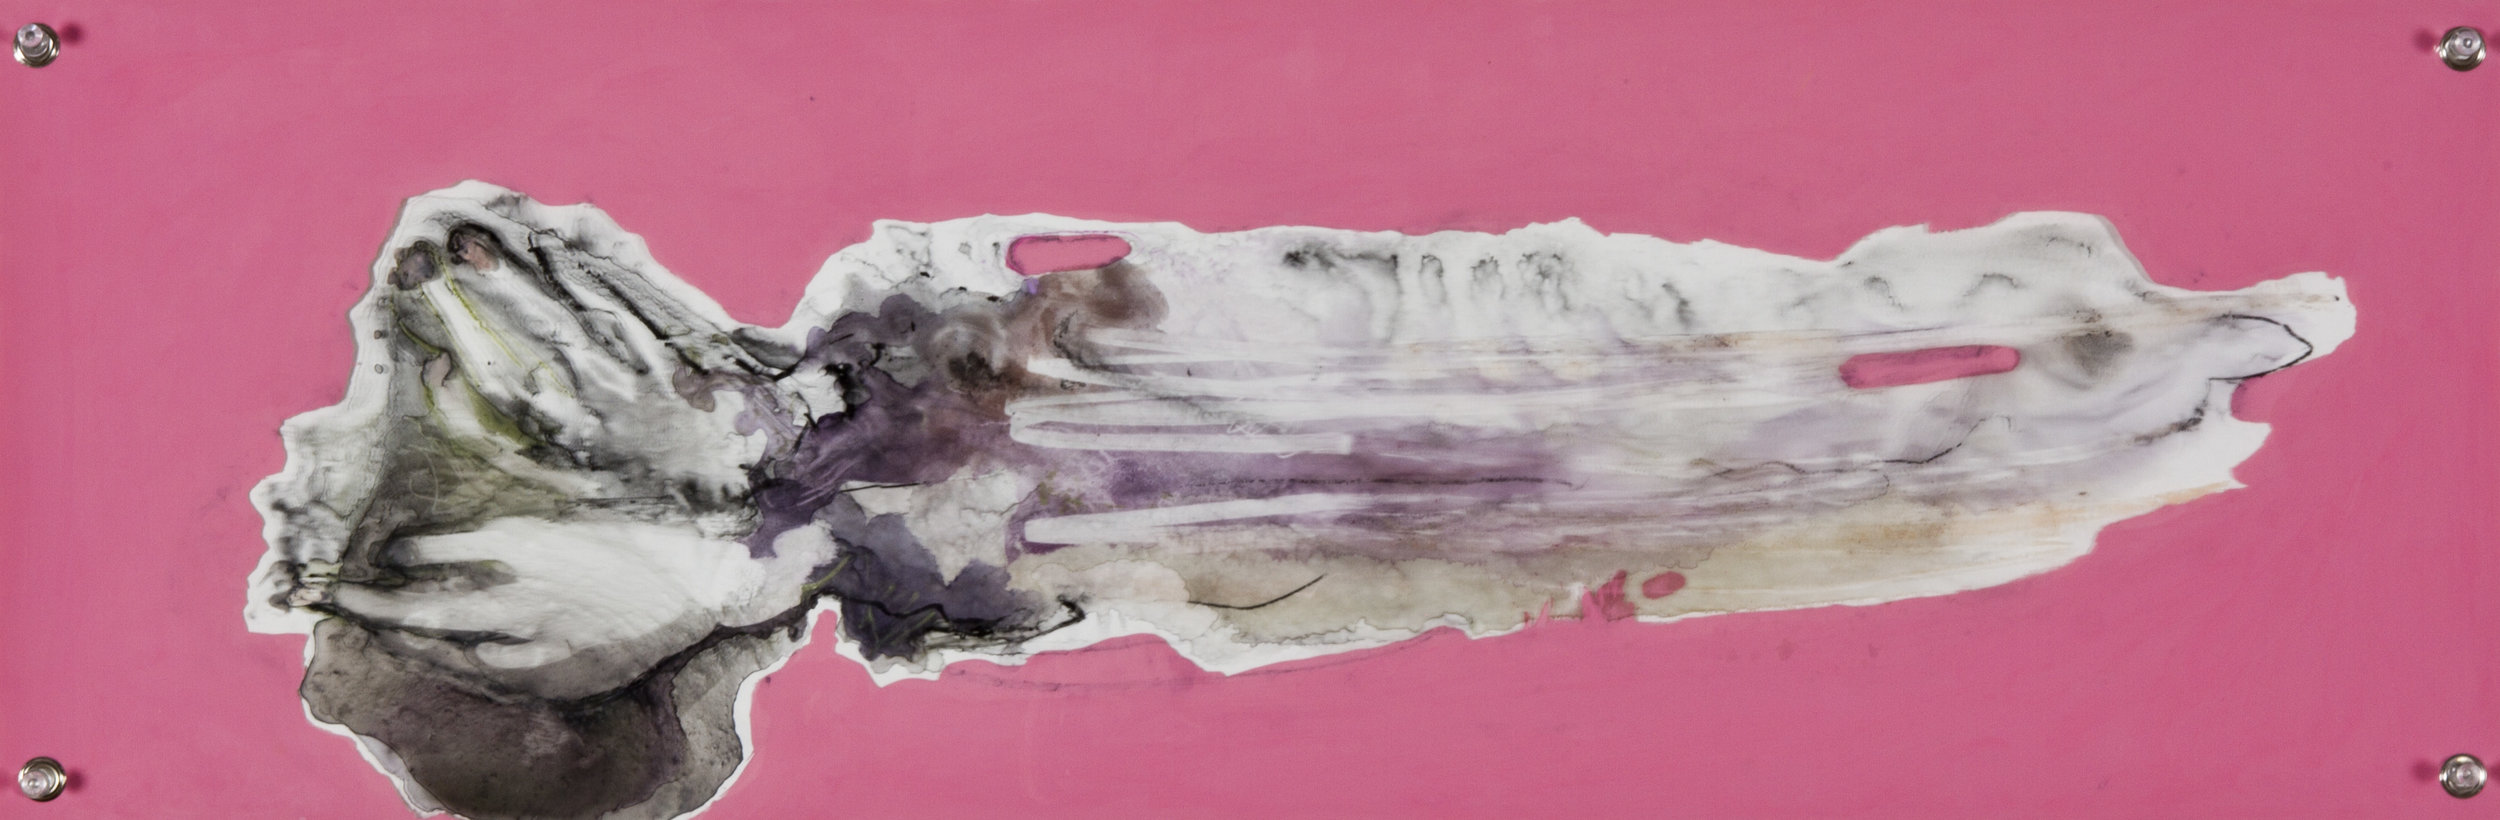 Vanished Structures, 2014, watercolor and acrylic on grommeted mylar, 10x30 inches